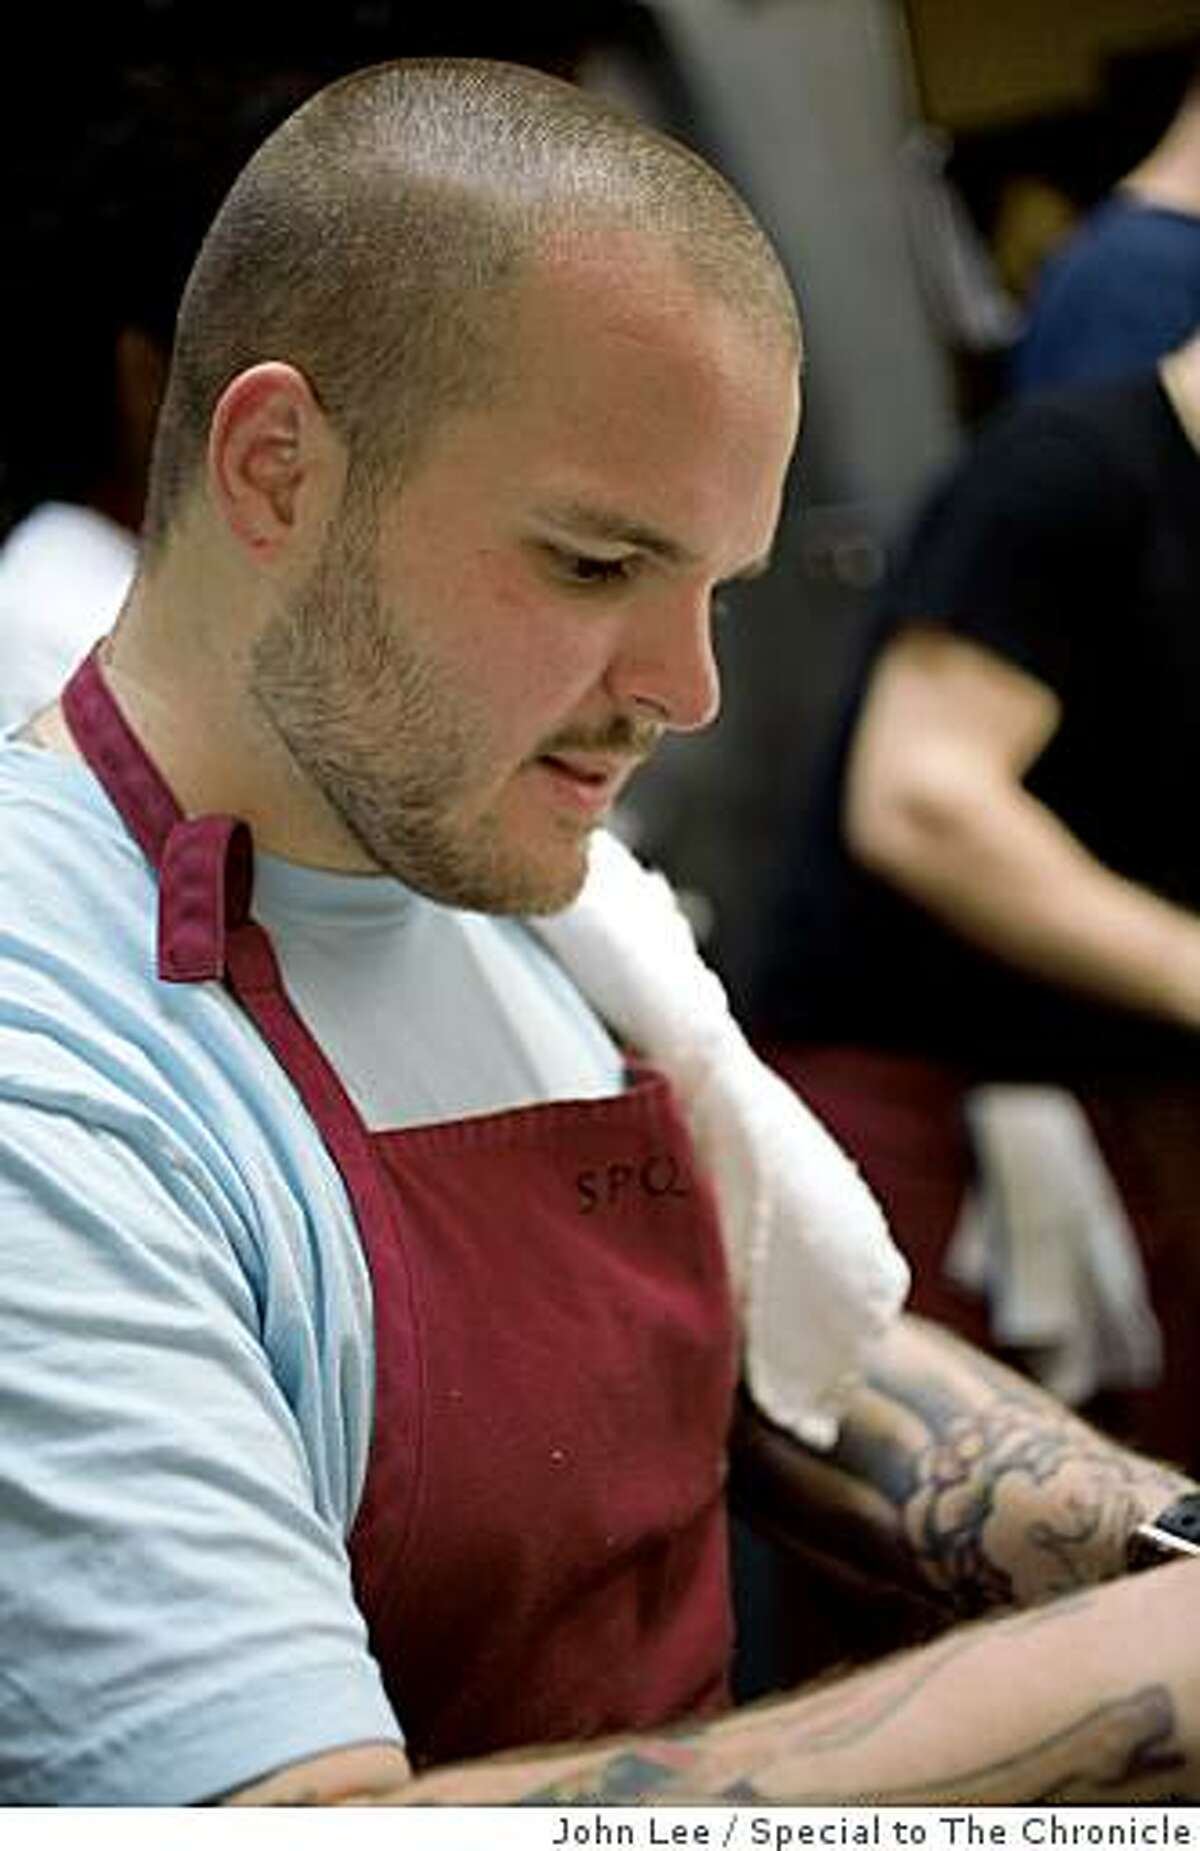 Nate Appleman of A16 in San Francisco has won the James Beard Rising Star Chef award.